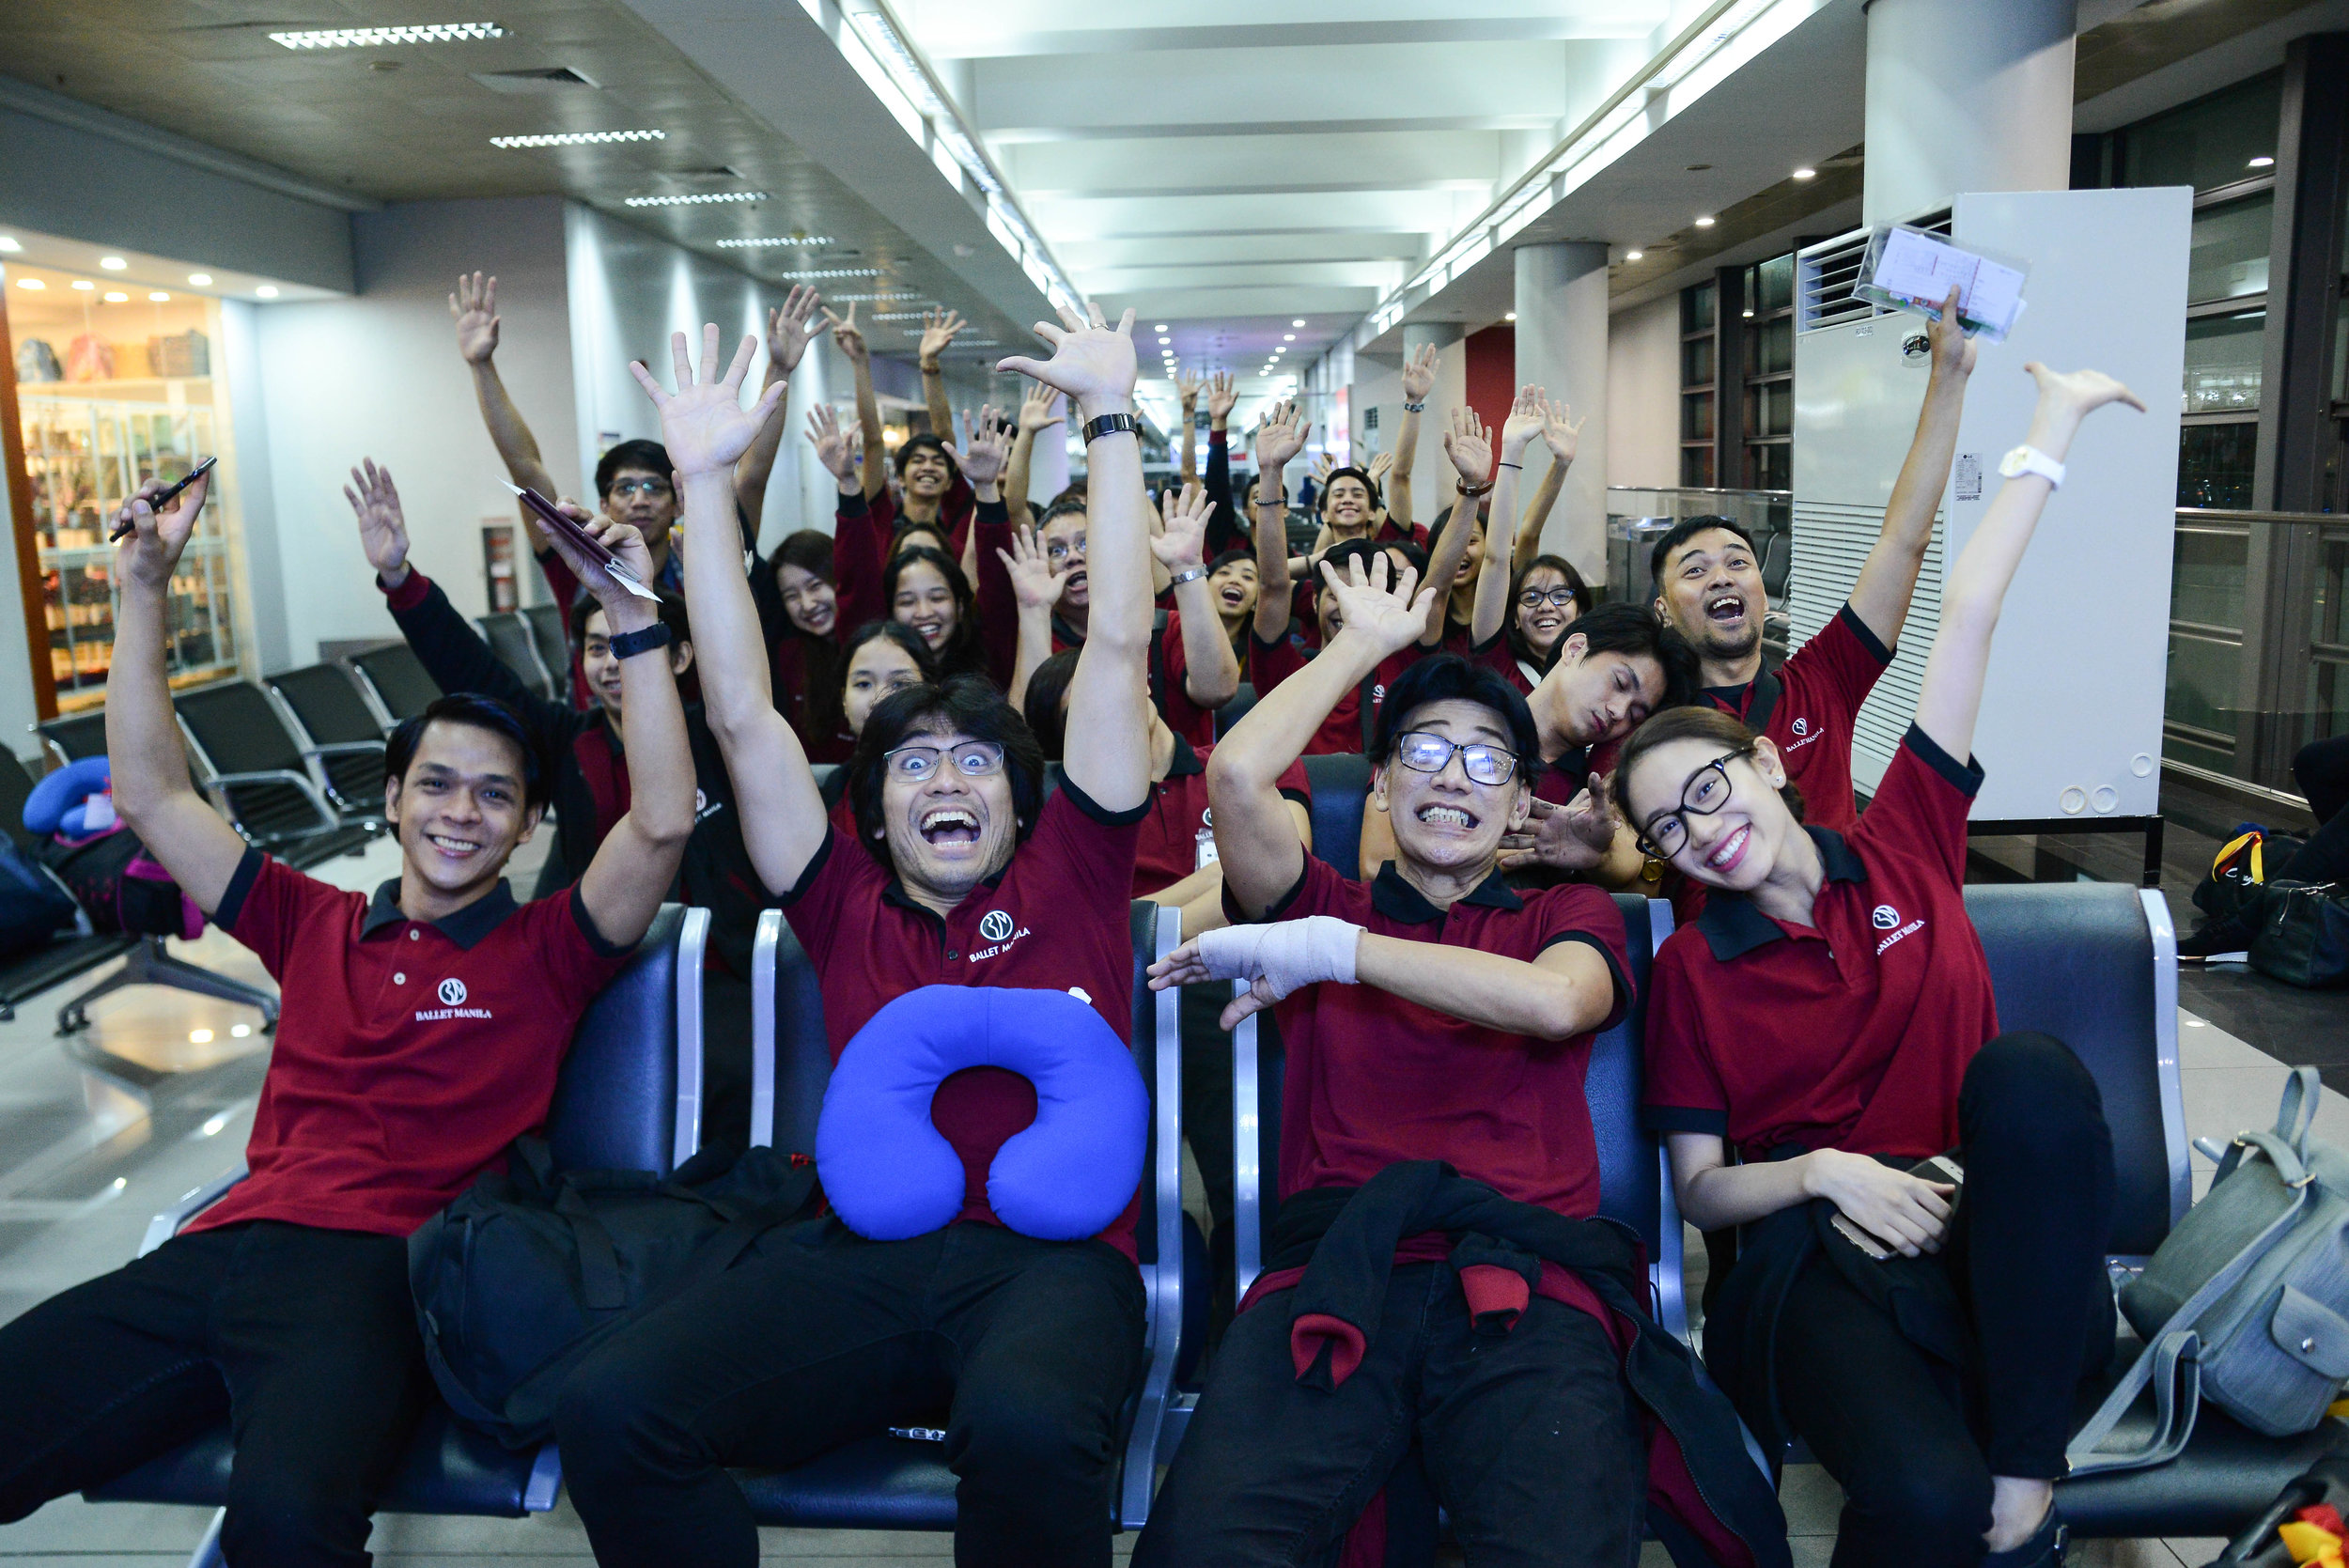 The group is in an upbeat mood at the airport just before leaving Manila. Photo by Mark Sumaylo